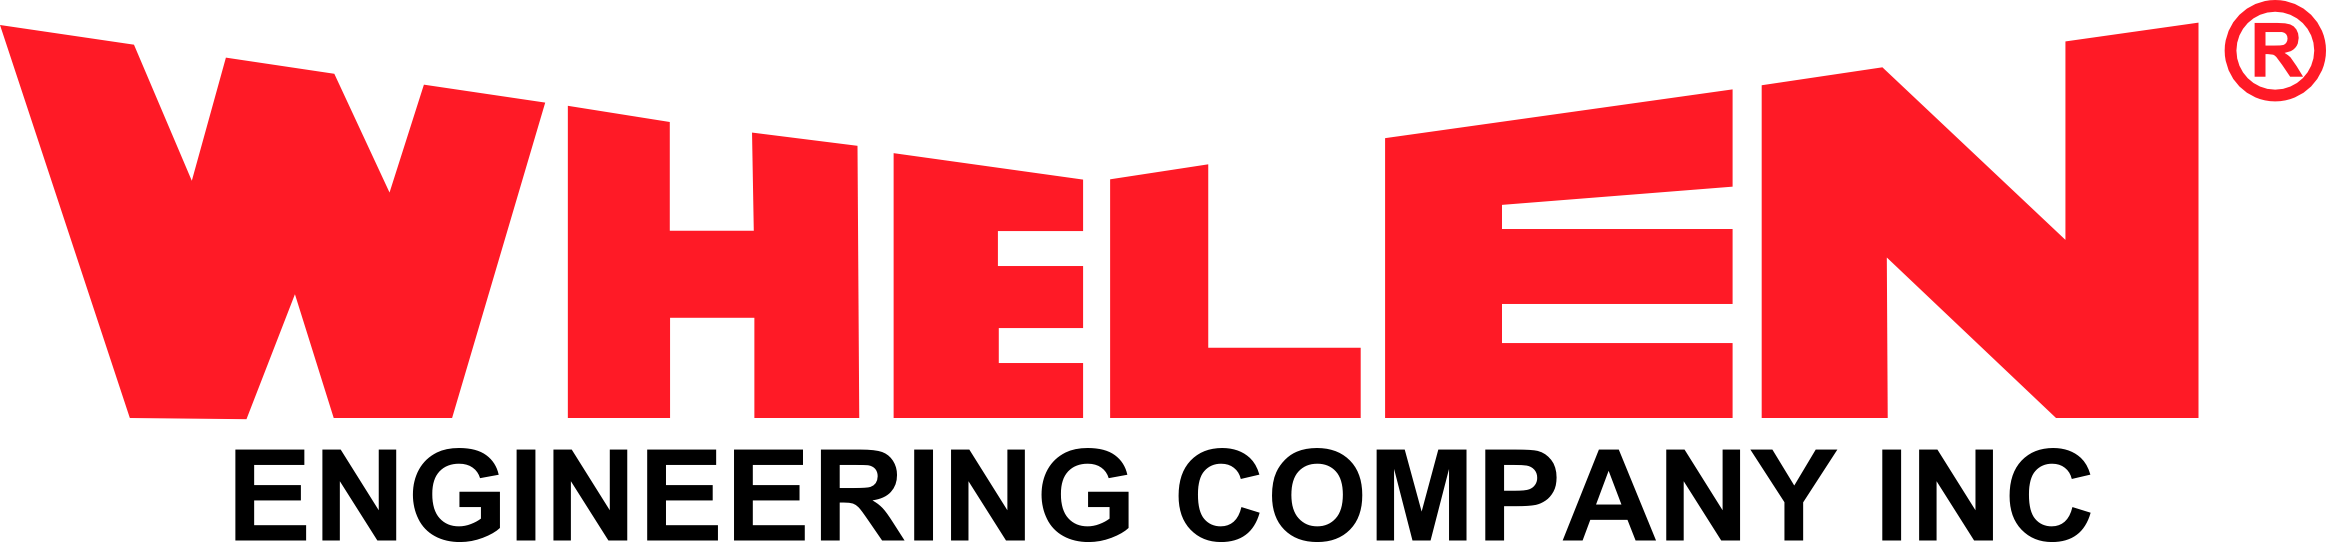 Whelen Engineering logo